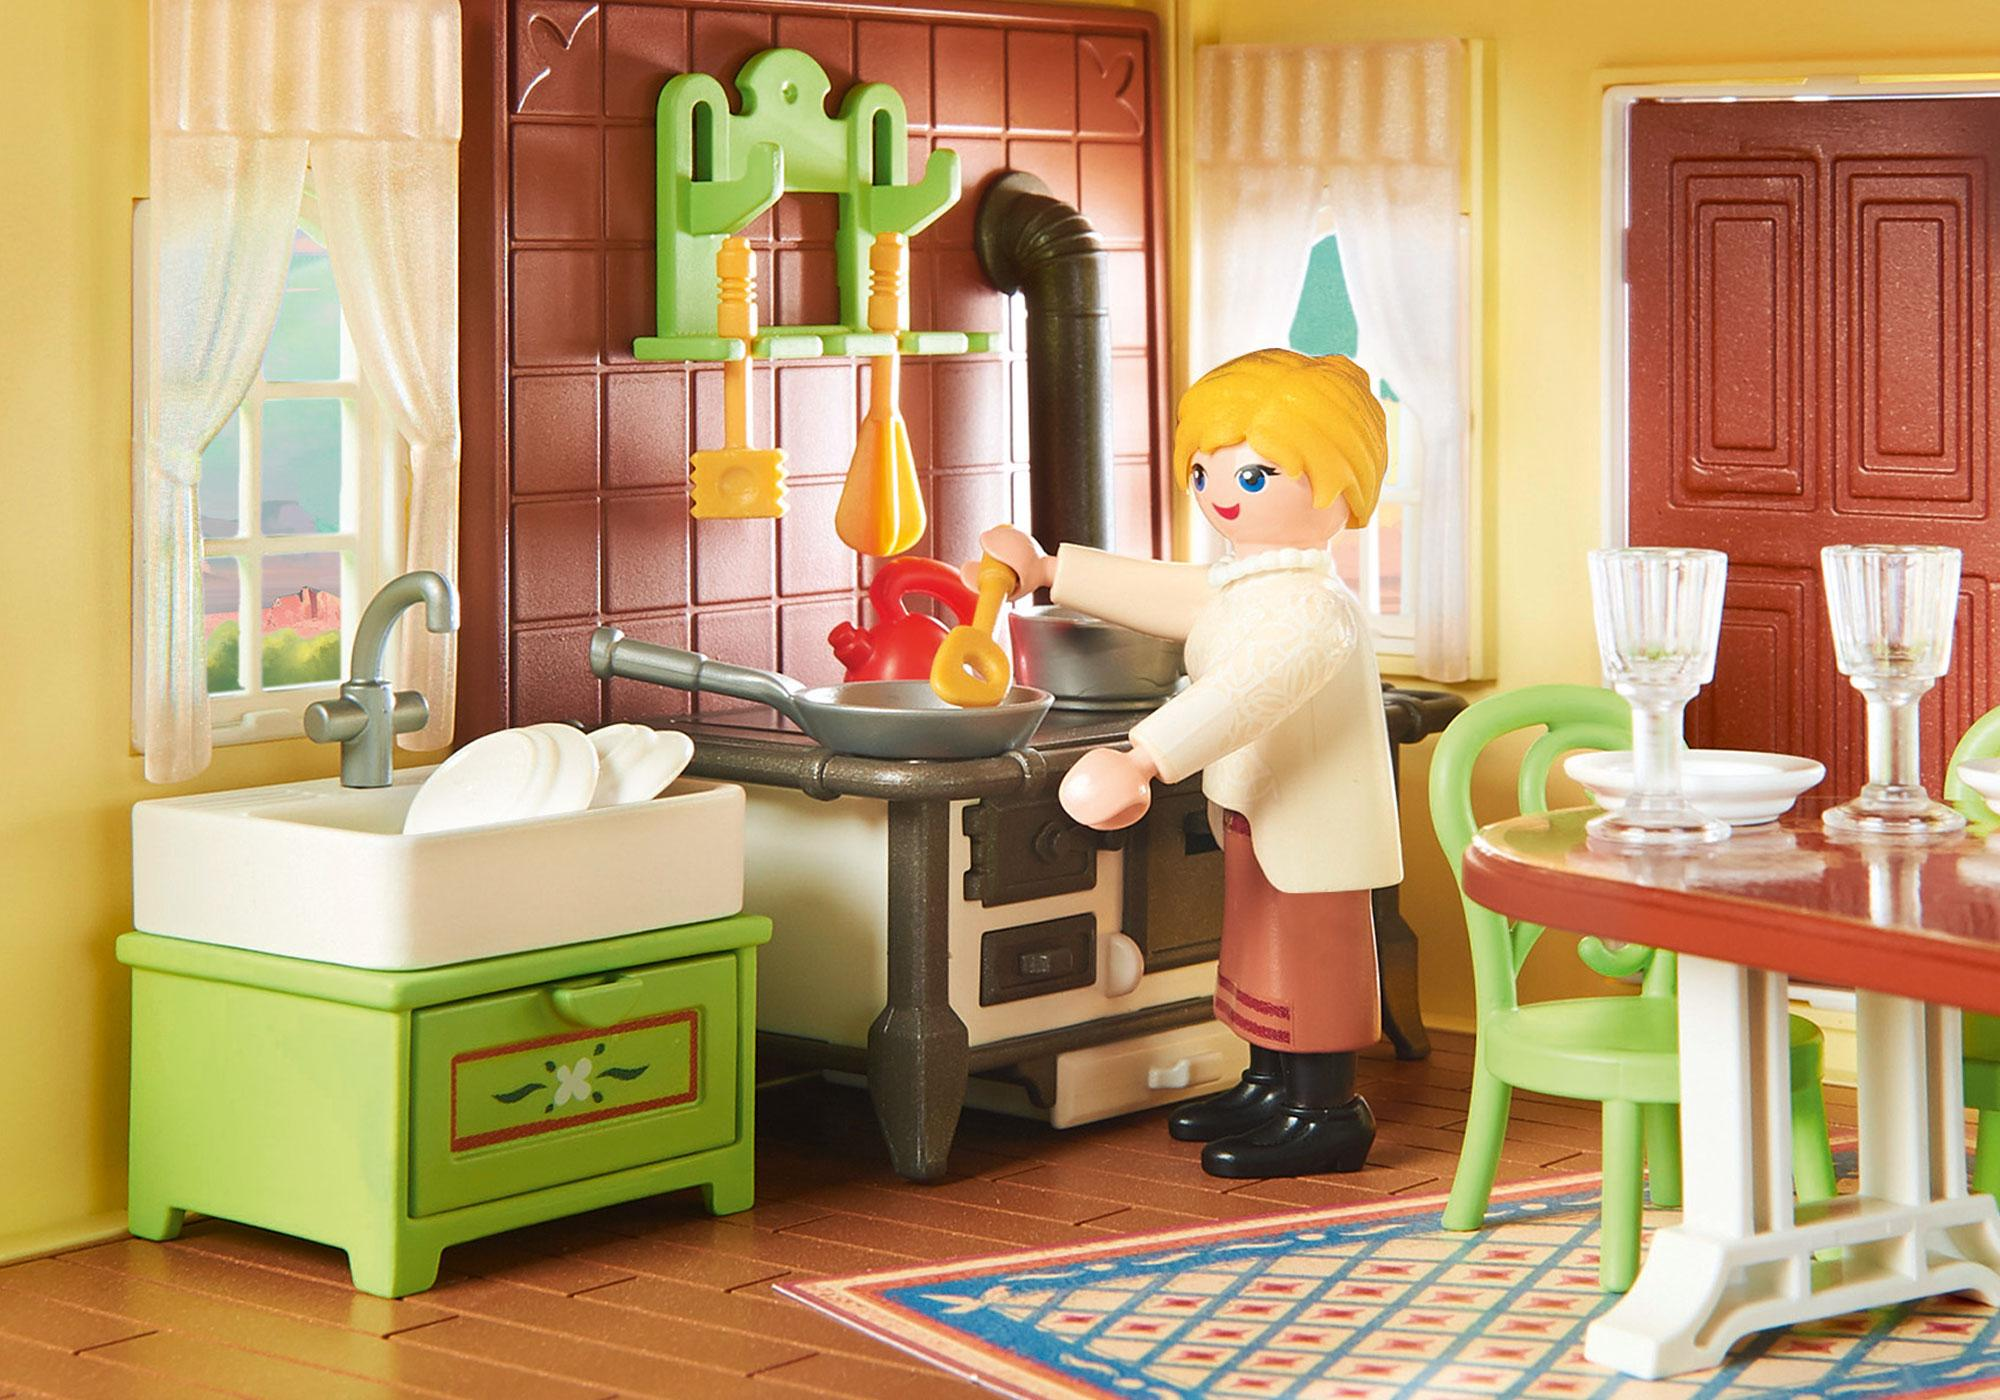 http://media.playmobil.com/i/playmobil/9475_product_extra1/Luckys glückliches Zuhause